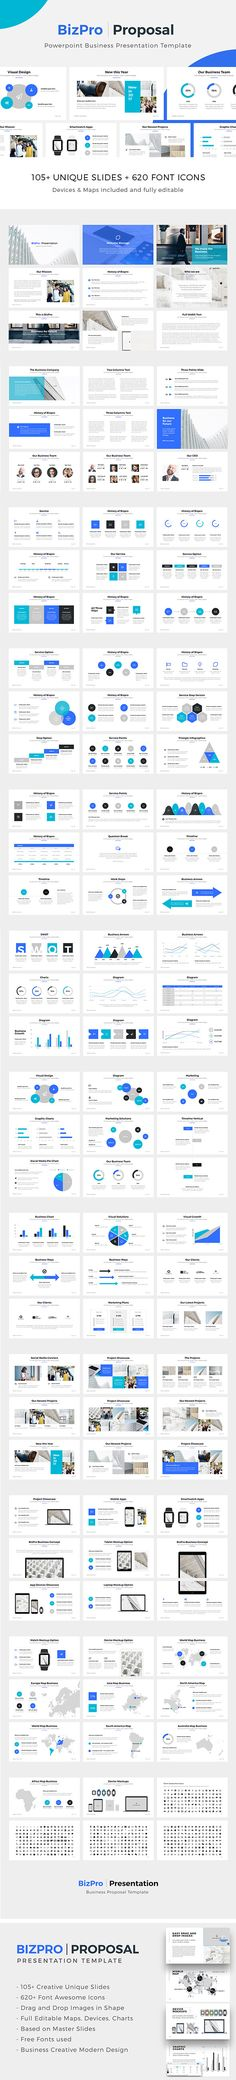 Commercial Proposal Format Gorgeous Commercial Proposal Template #09  Commercial Proposal  Pinterest .